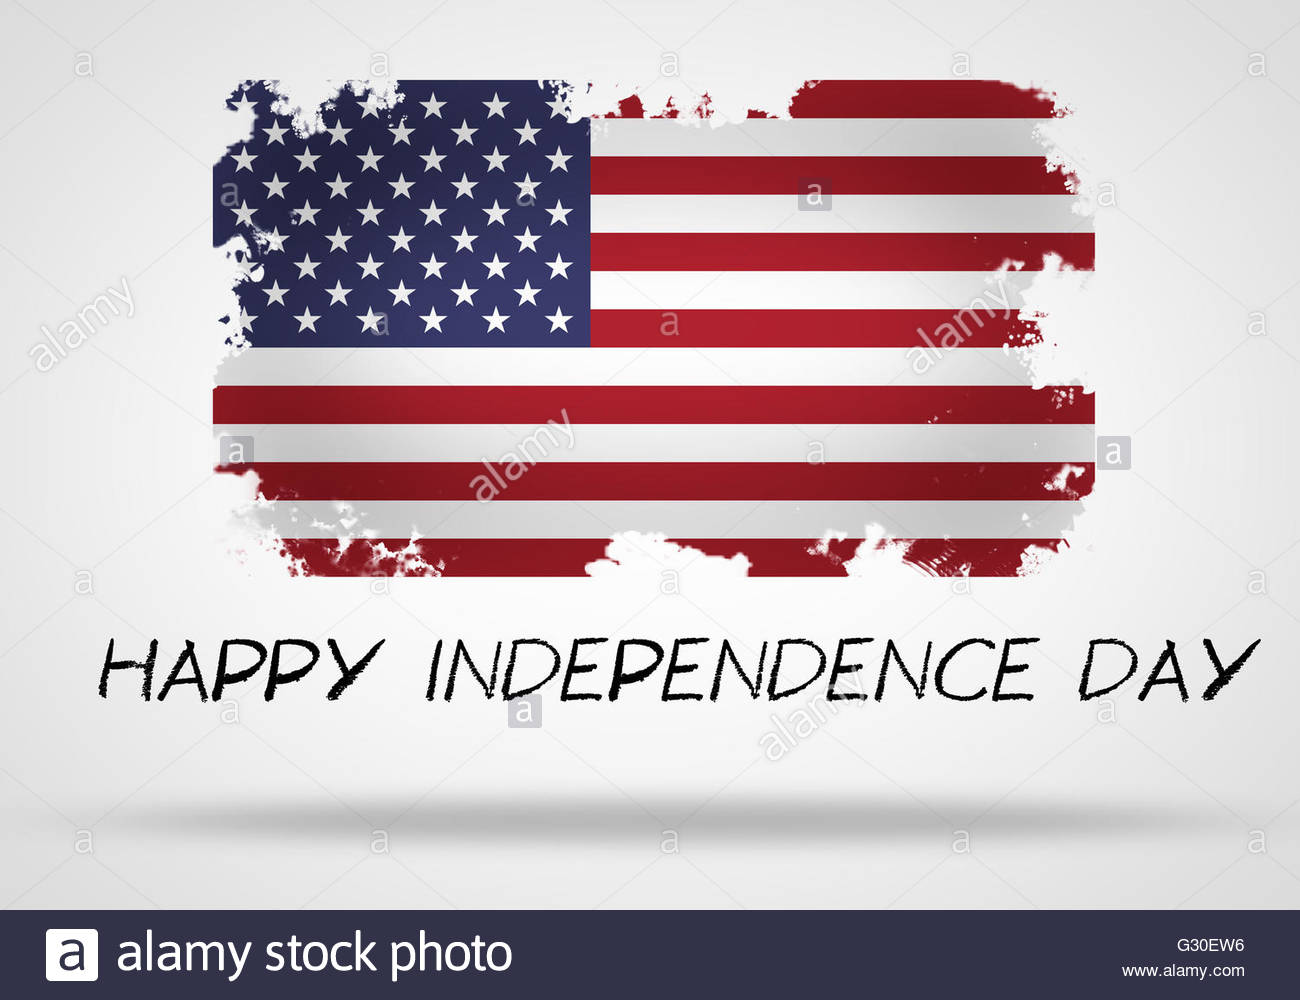 Happy Independence Day - Stock Image